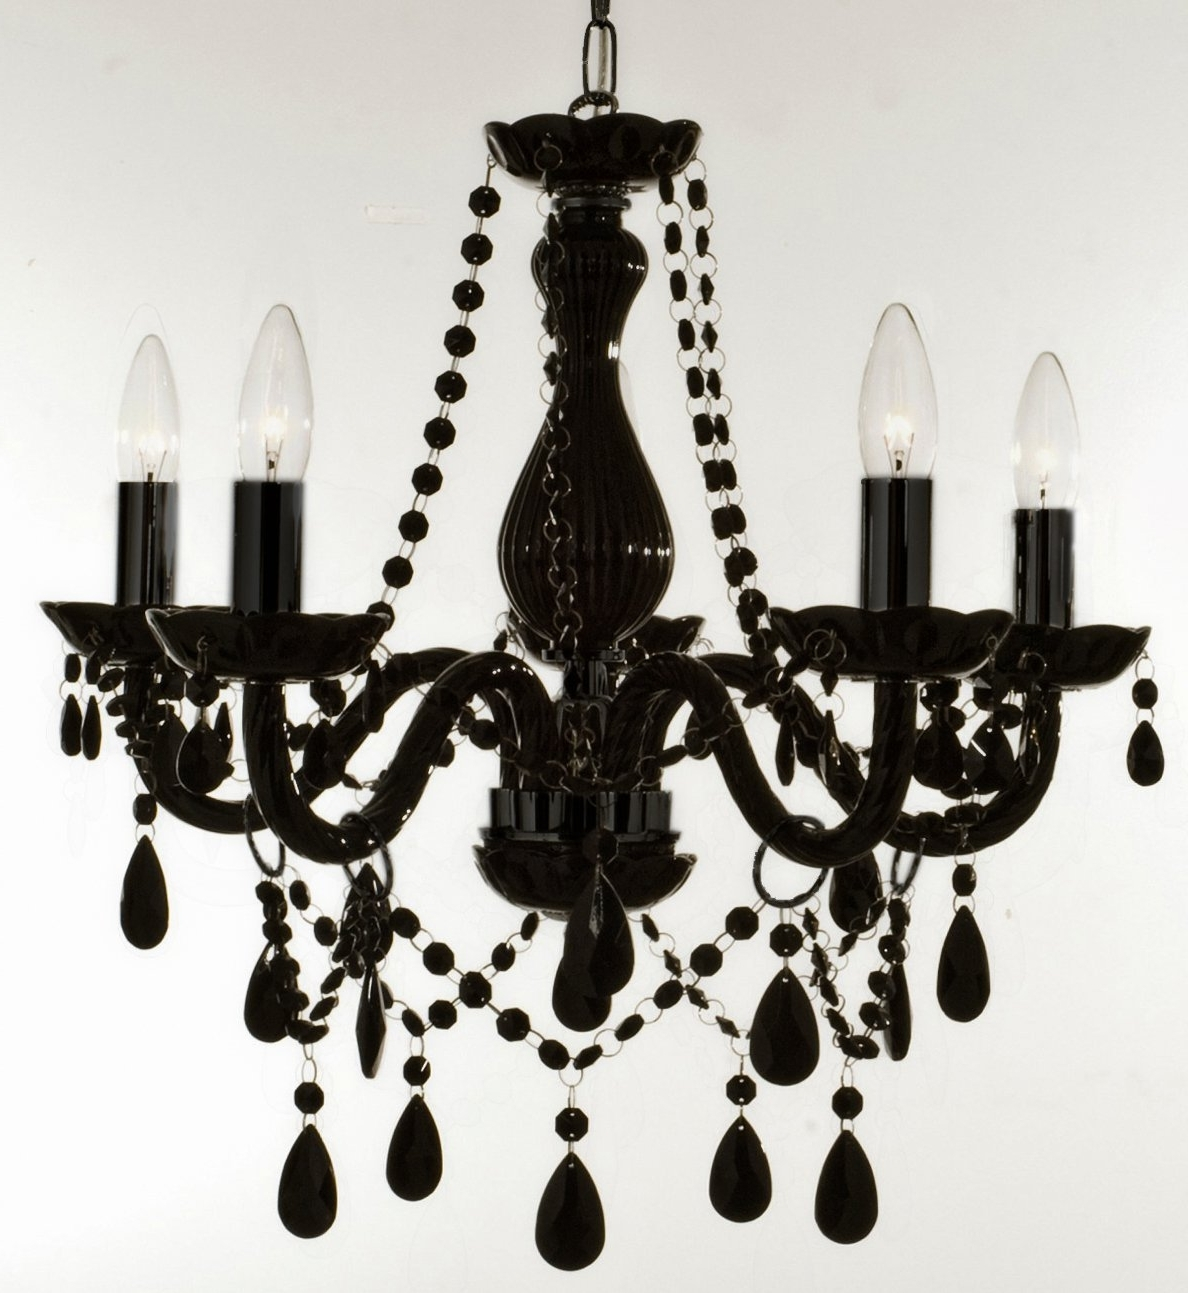 Black Chandeliers With Preferred Chandelier (View 6 of 20)